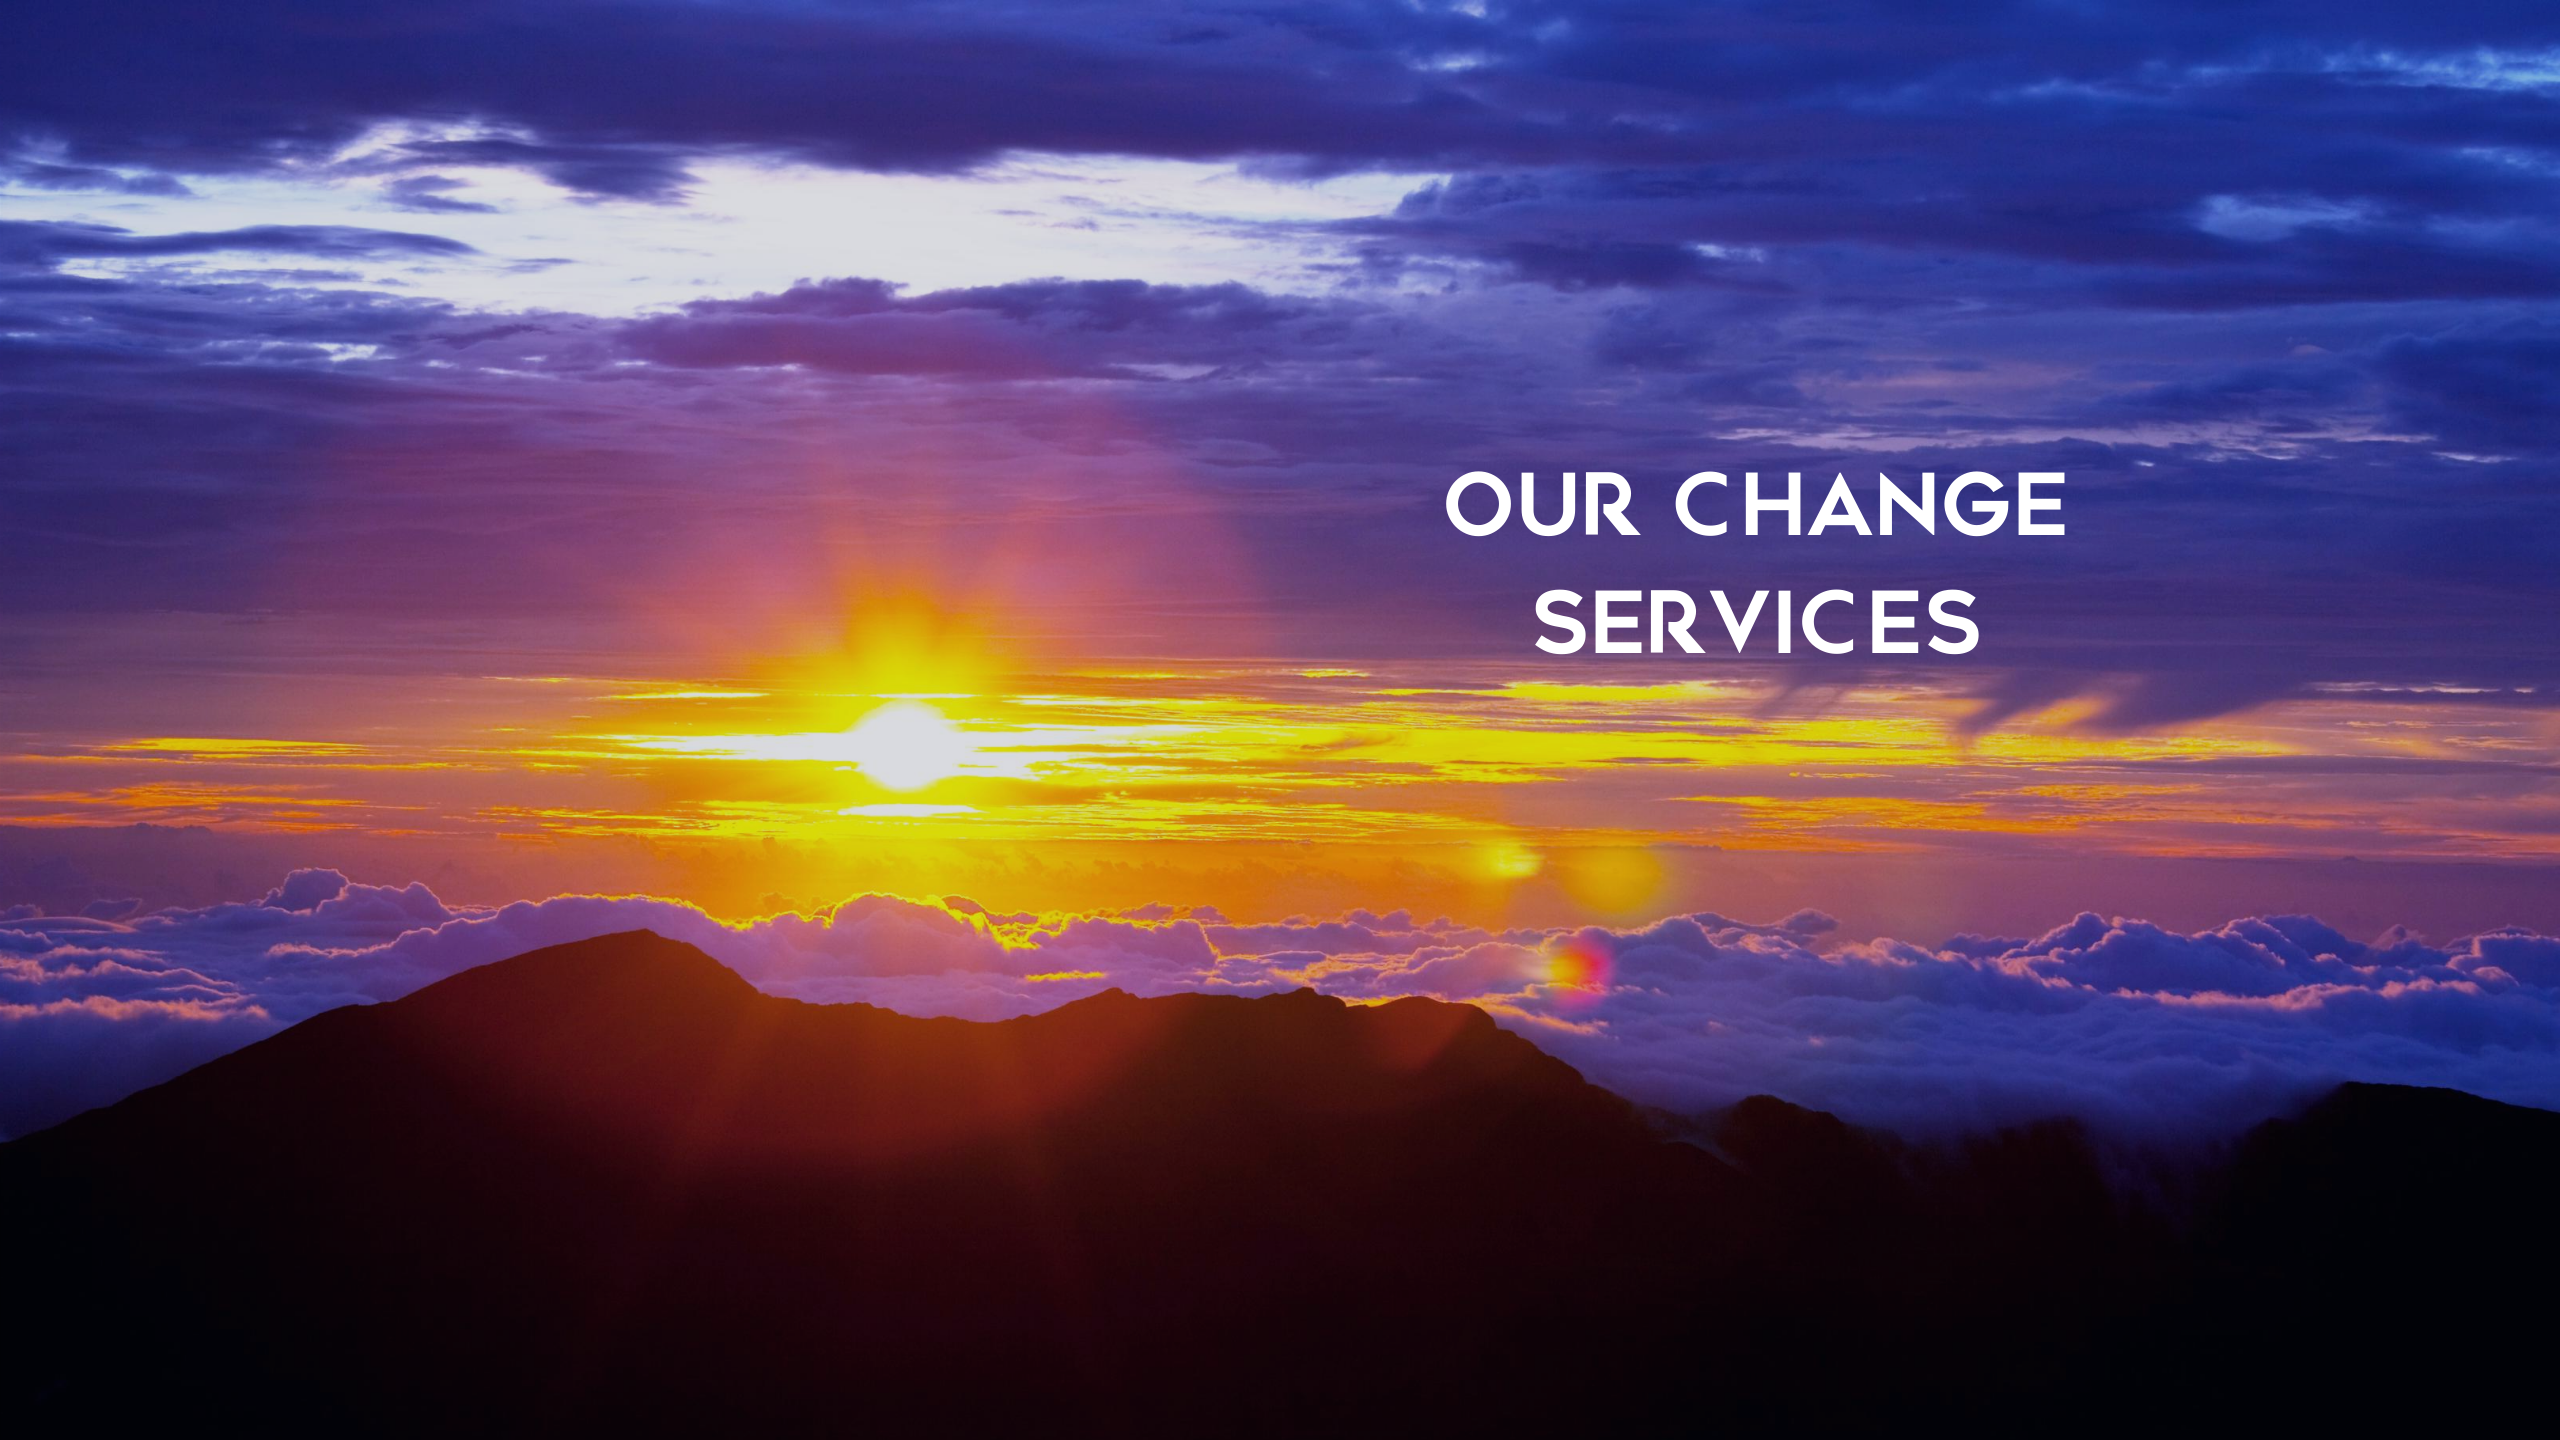 The Change Hub Services page